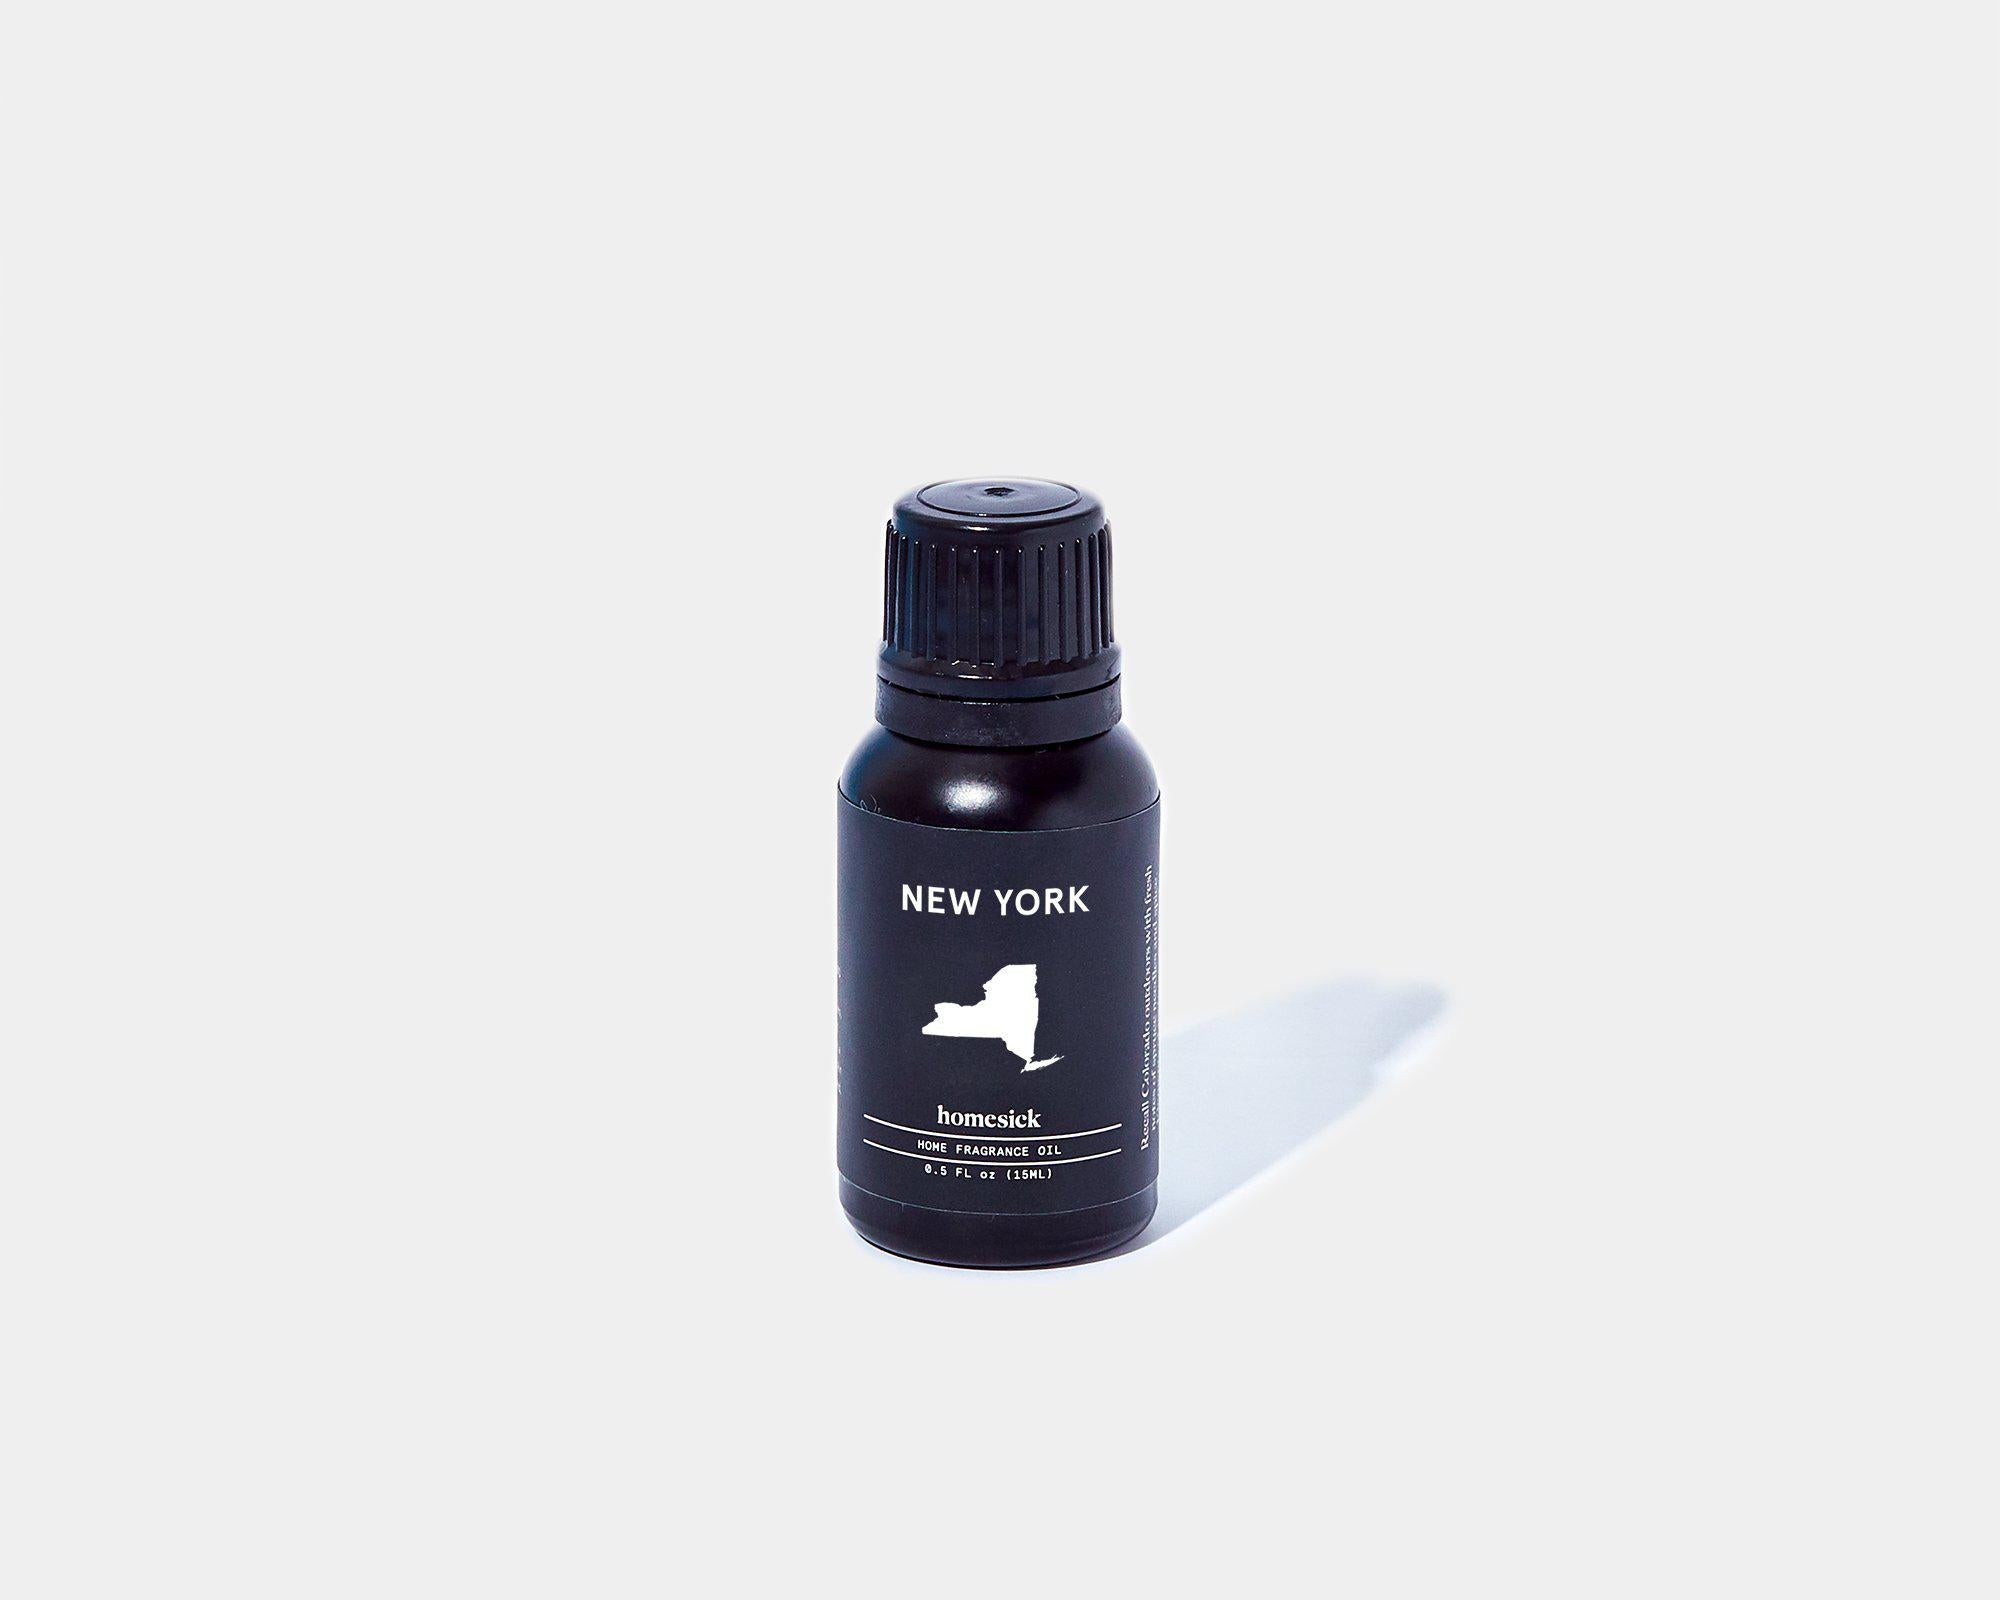 New York Fragrance Oil 15ml